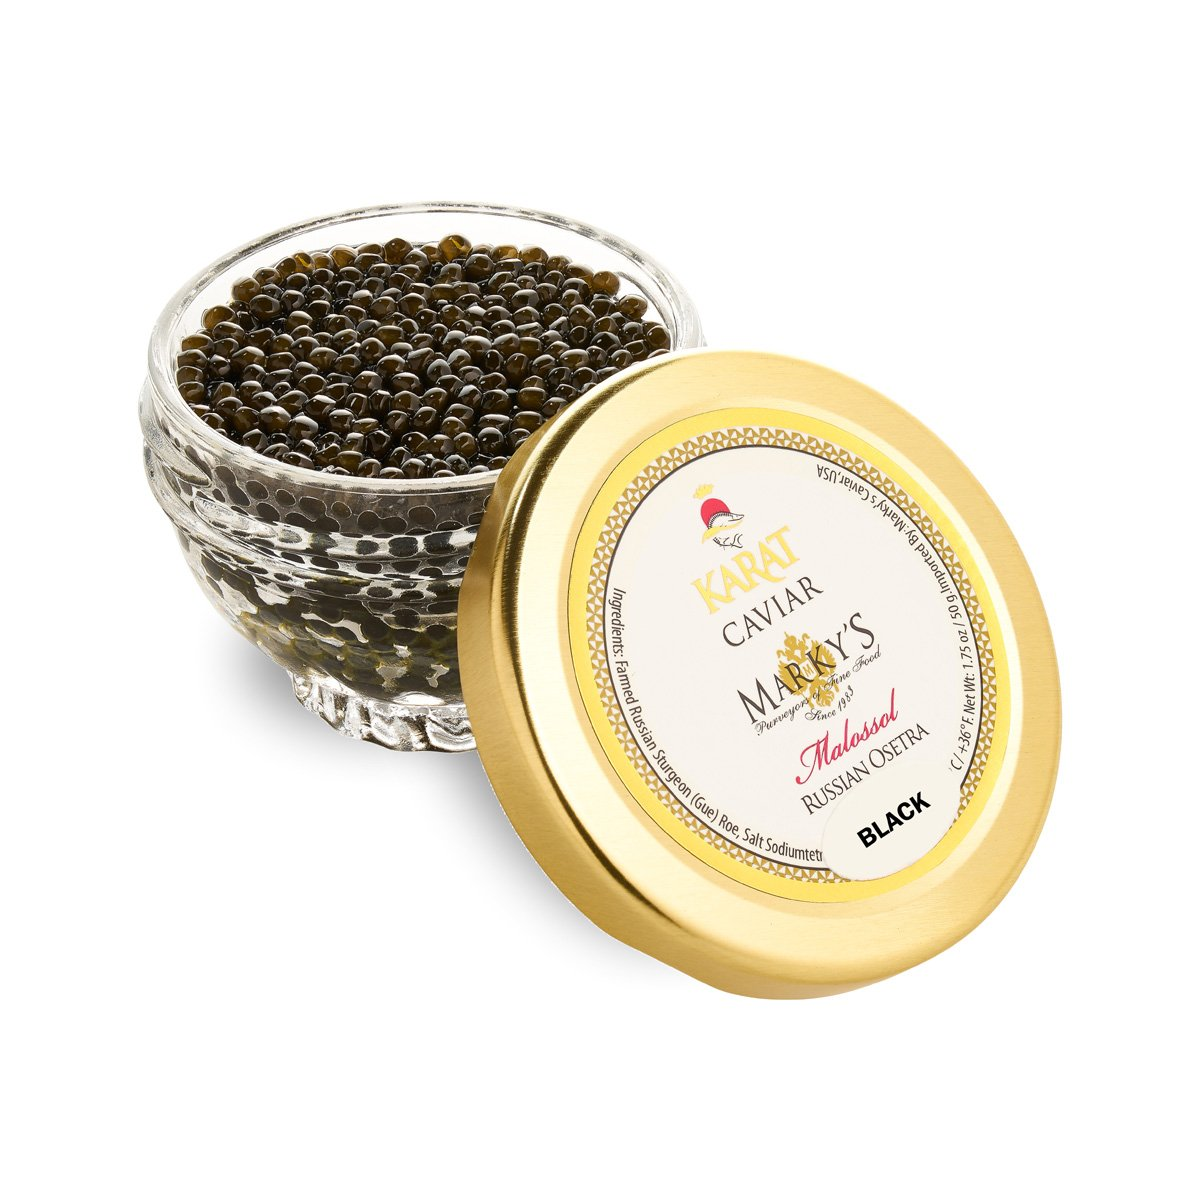 Russian Osetra Karat Caviar - Black -  4.0 oz jar by Marky'rs Caviar